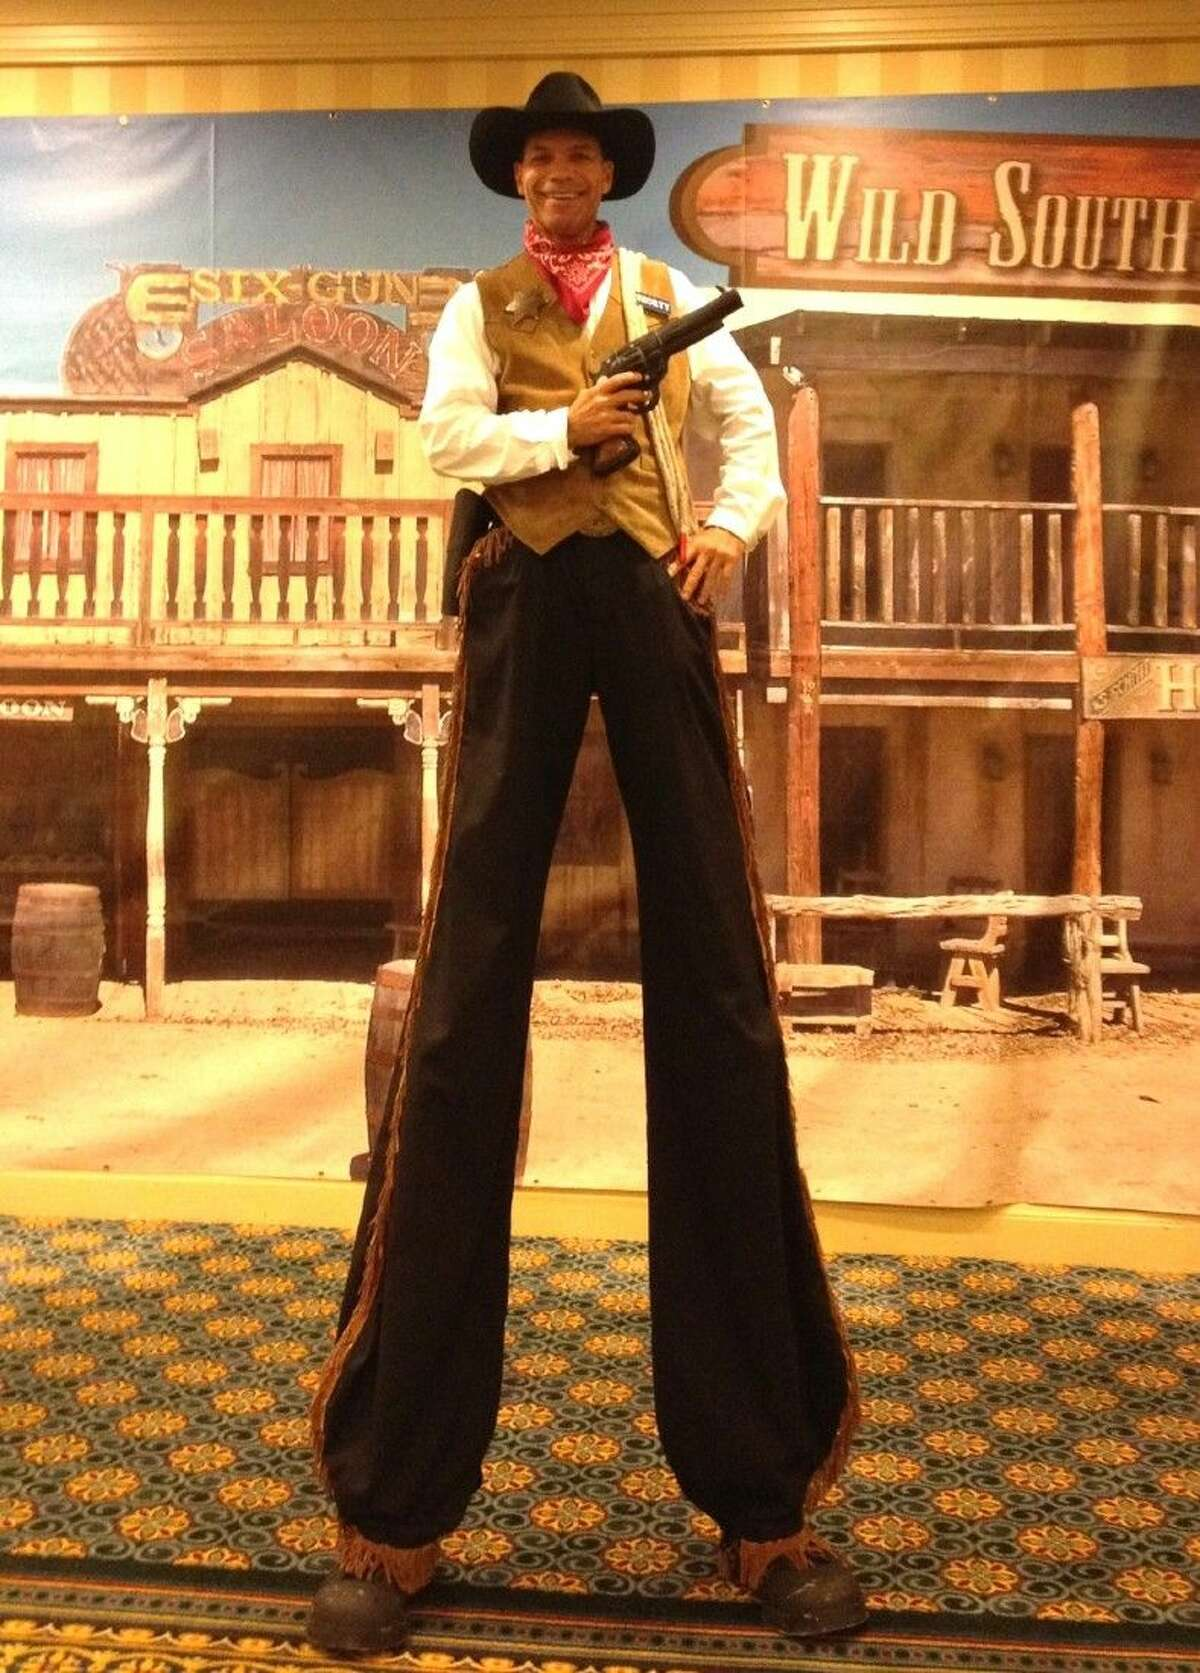 The larger-than-life Tall Texan cowboy will entertain guests with rope tricks and his ability to balance on stilts from 11 a.m. to noon on Go Texan Day at The Woodlands Children's Museum.